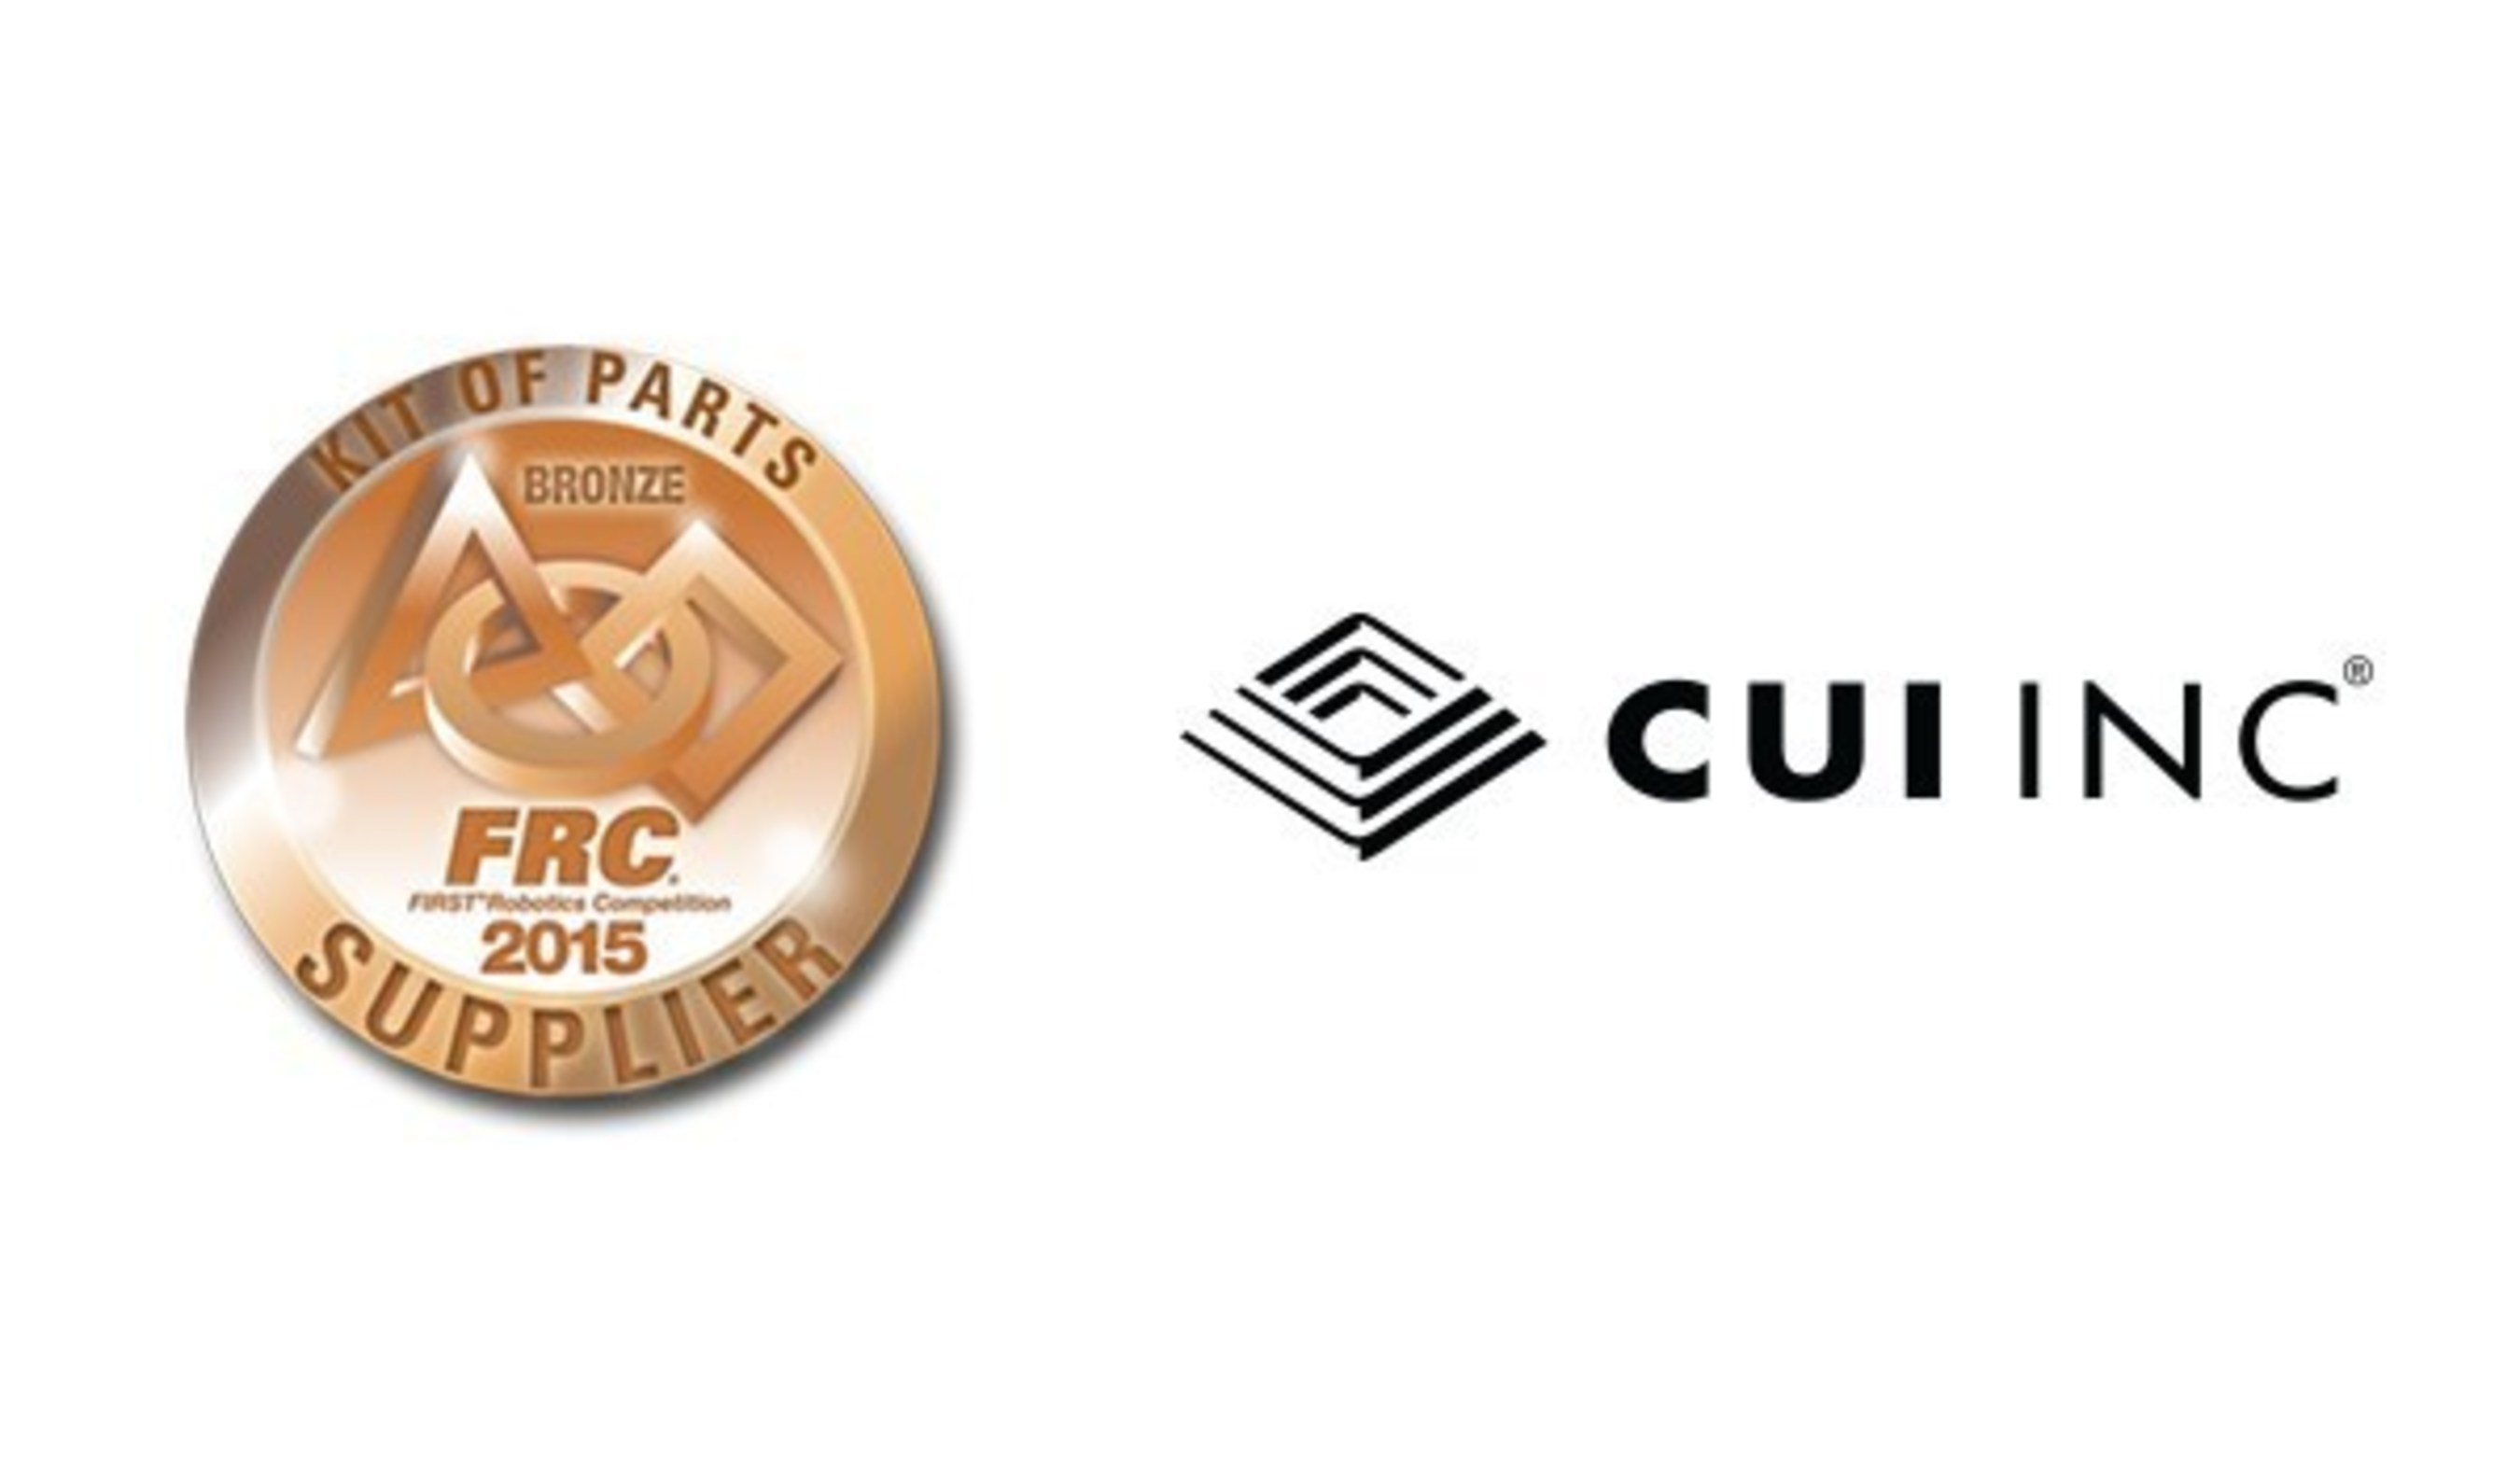 Cui Global Inc S Wholly Owned Subsidiary Cui Inc Enables The